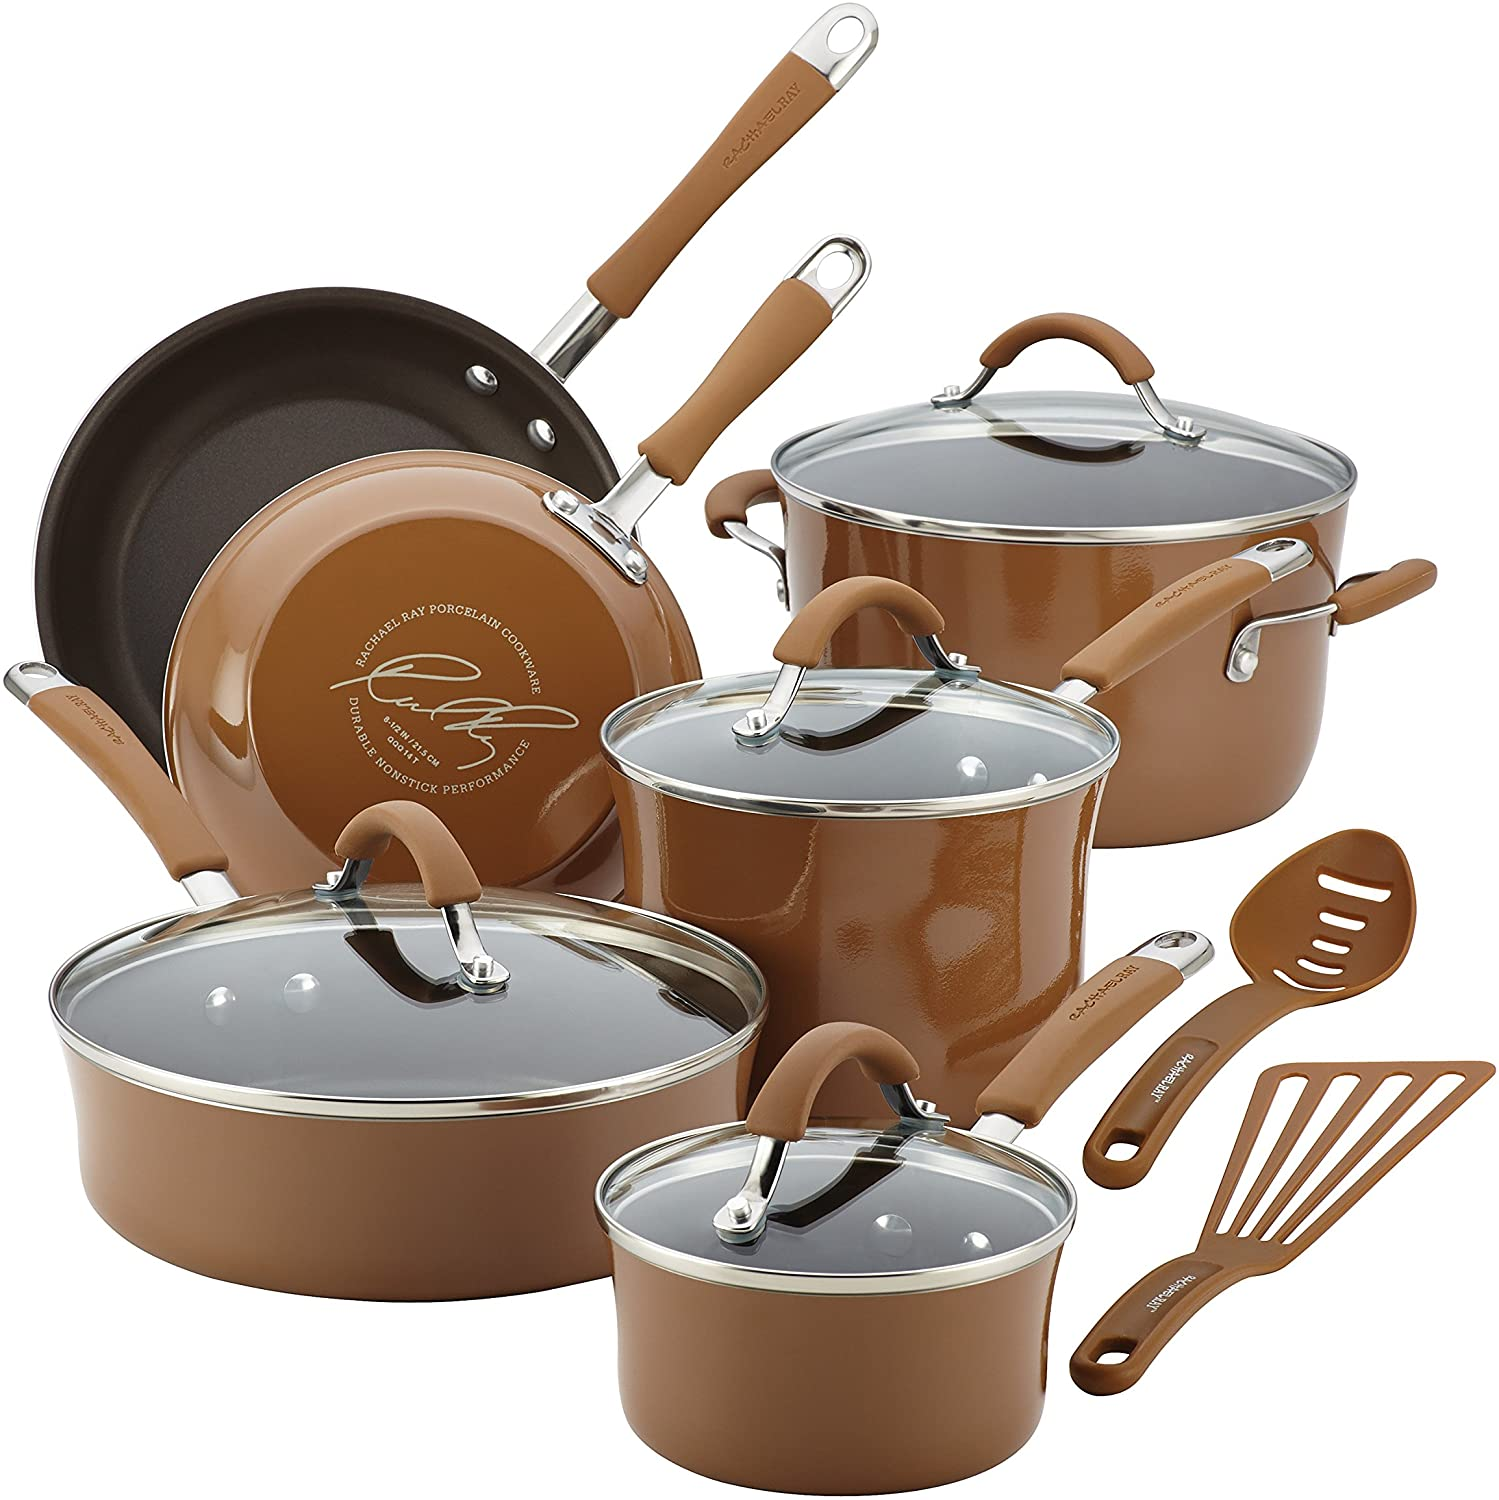 Rachael Ray Cucina 12 Piece Nonstick Cookware Set, Mushroom Brown